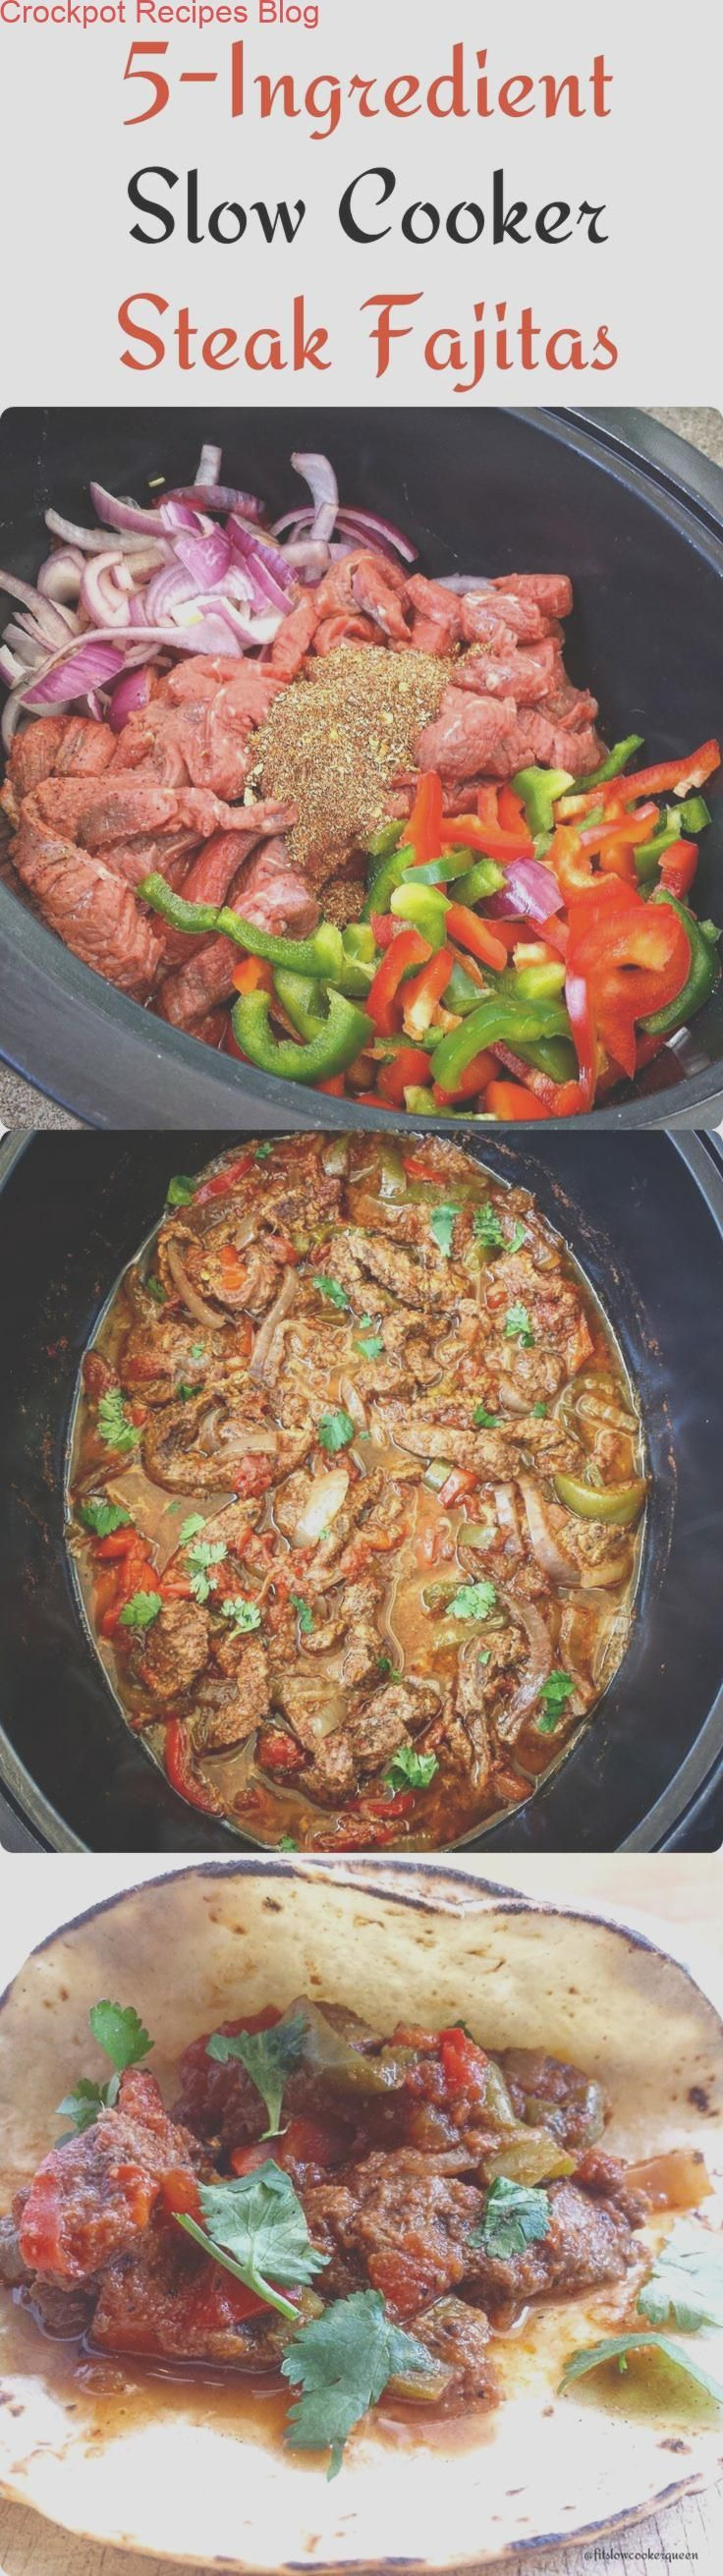 There are only 5-Ingredients in this flavorful slow cooker steak fajitas recipe....   - keto ... #steakfajitarecipe